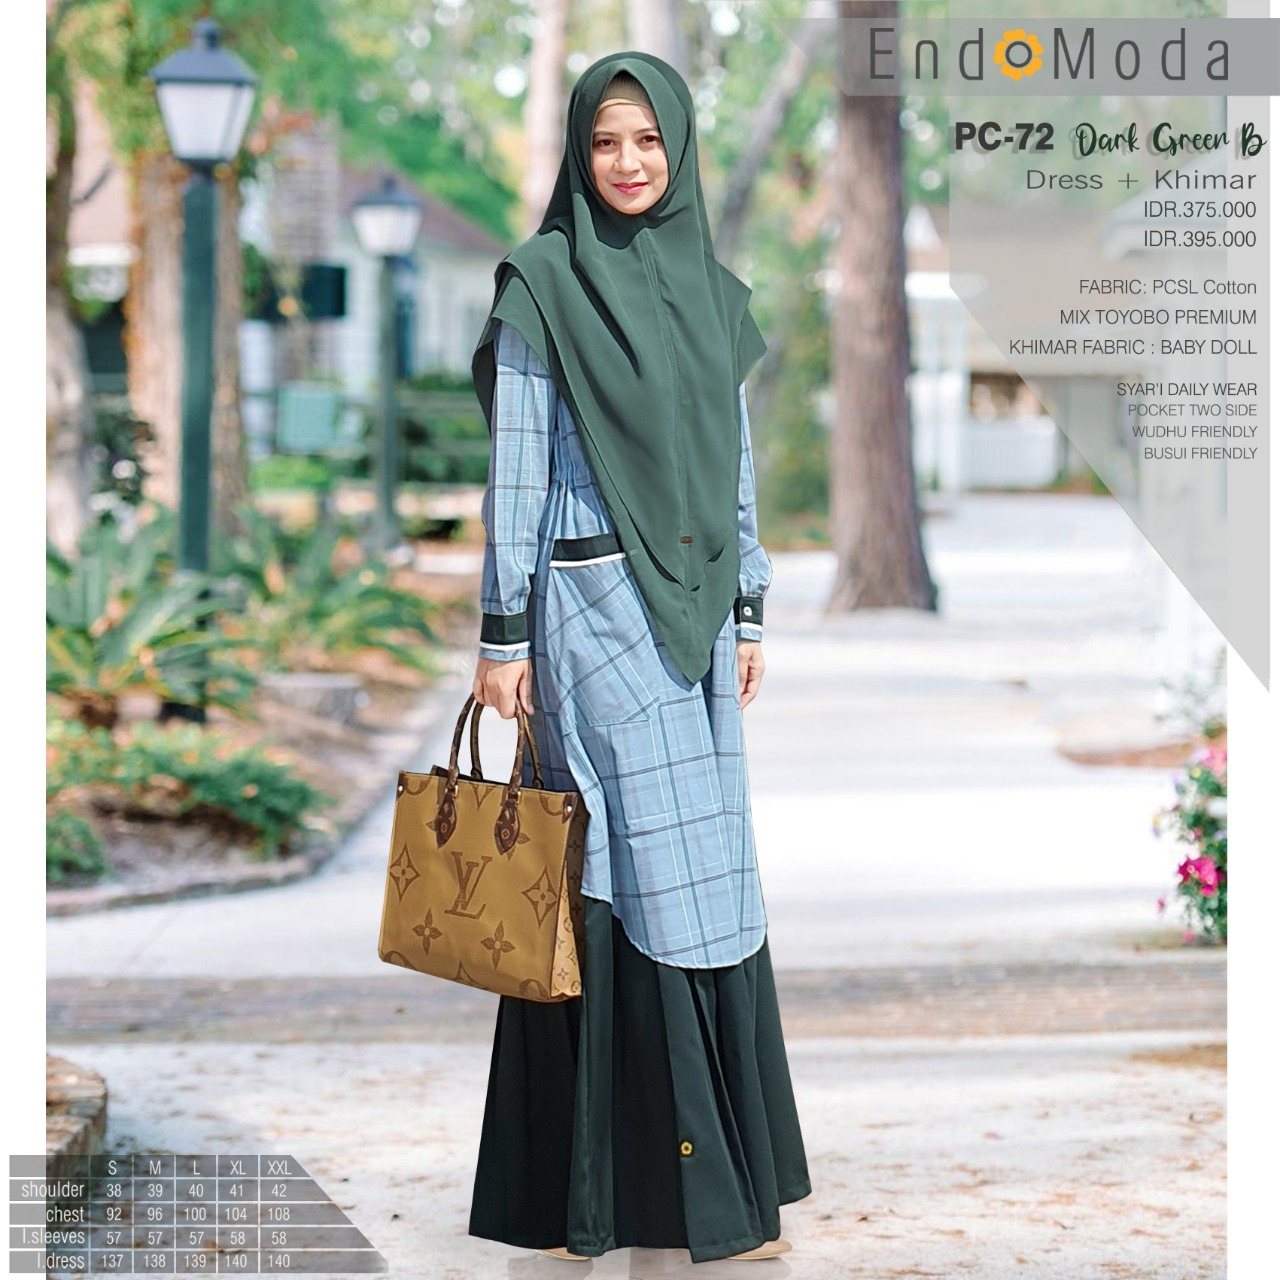 gamis endomoda PC 72 Dark Green